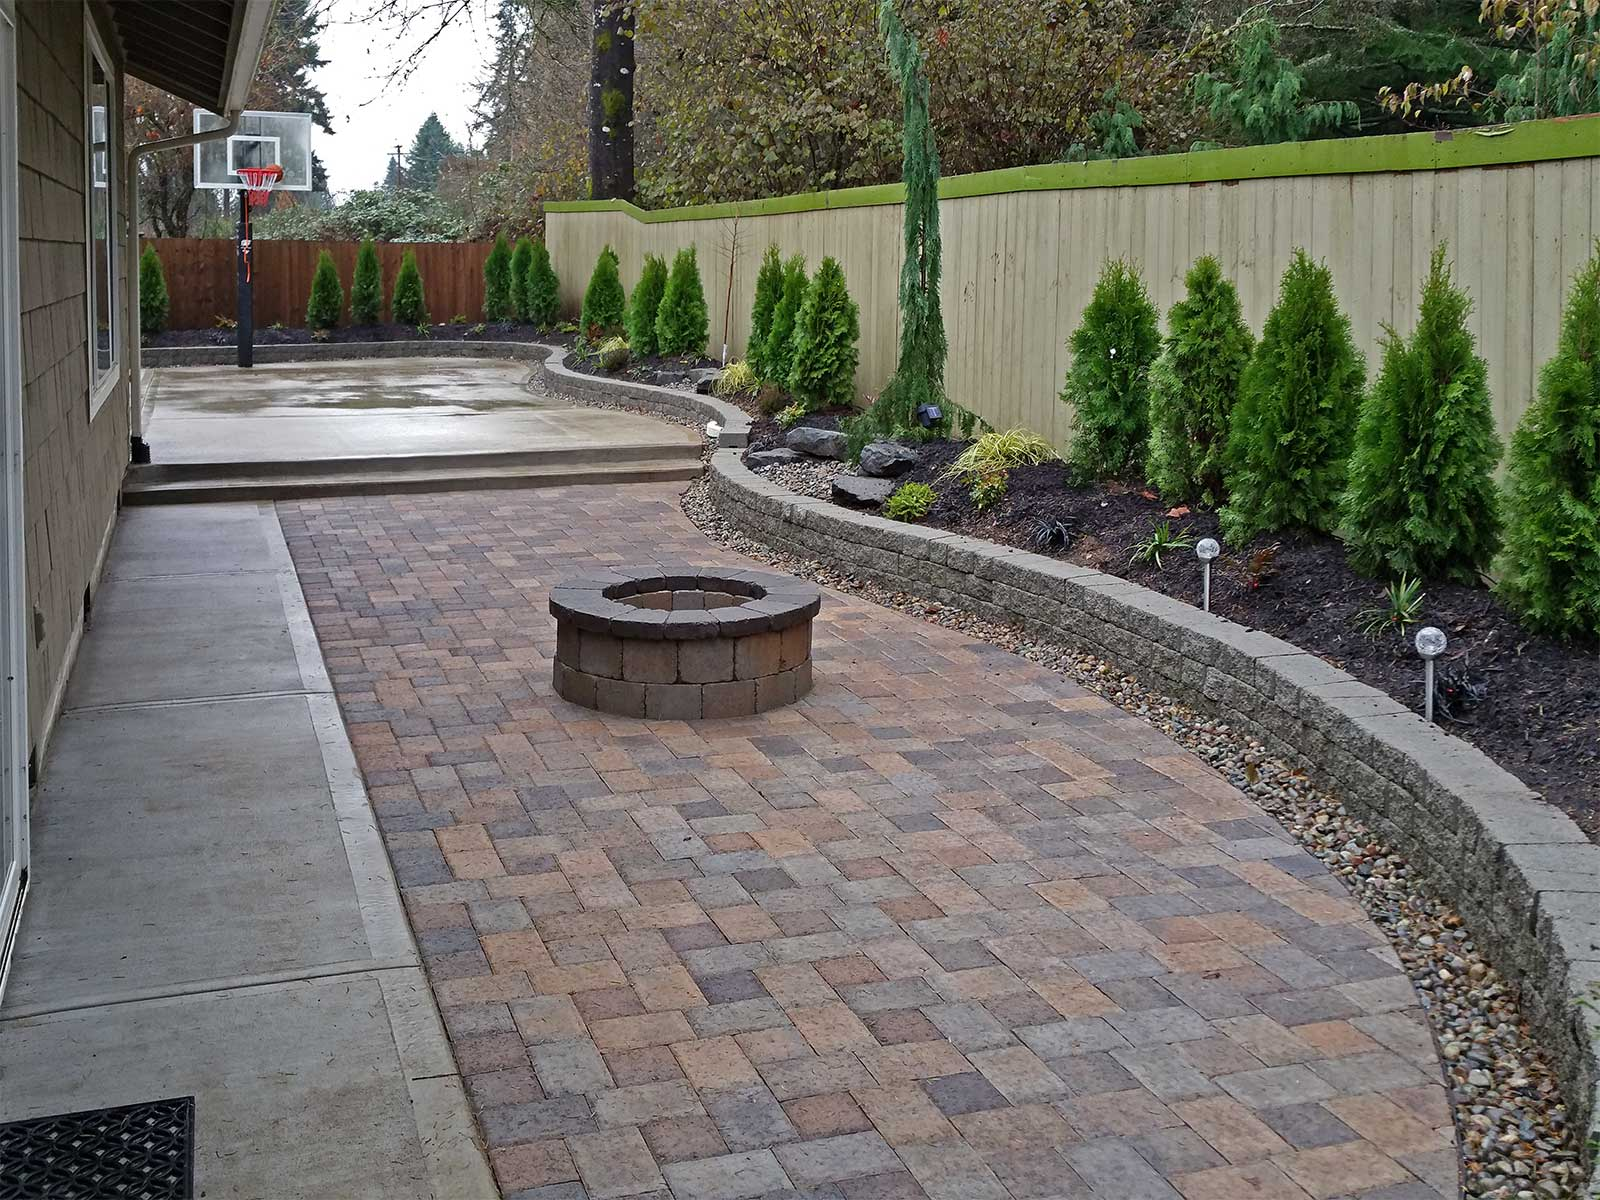 Backyard Paver Patio Connected To A Concrete Slab Basketball Court. Point  To The Photo To